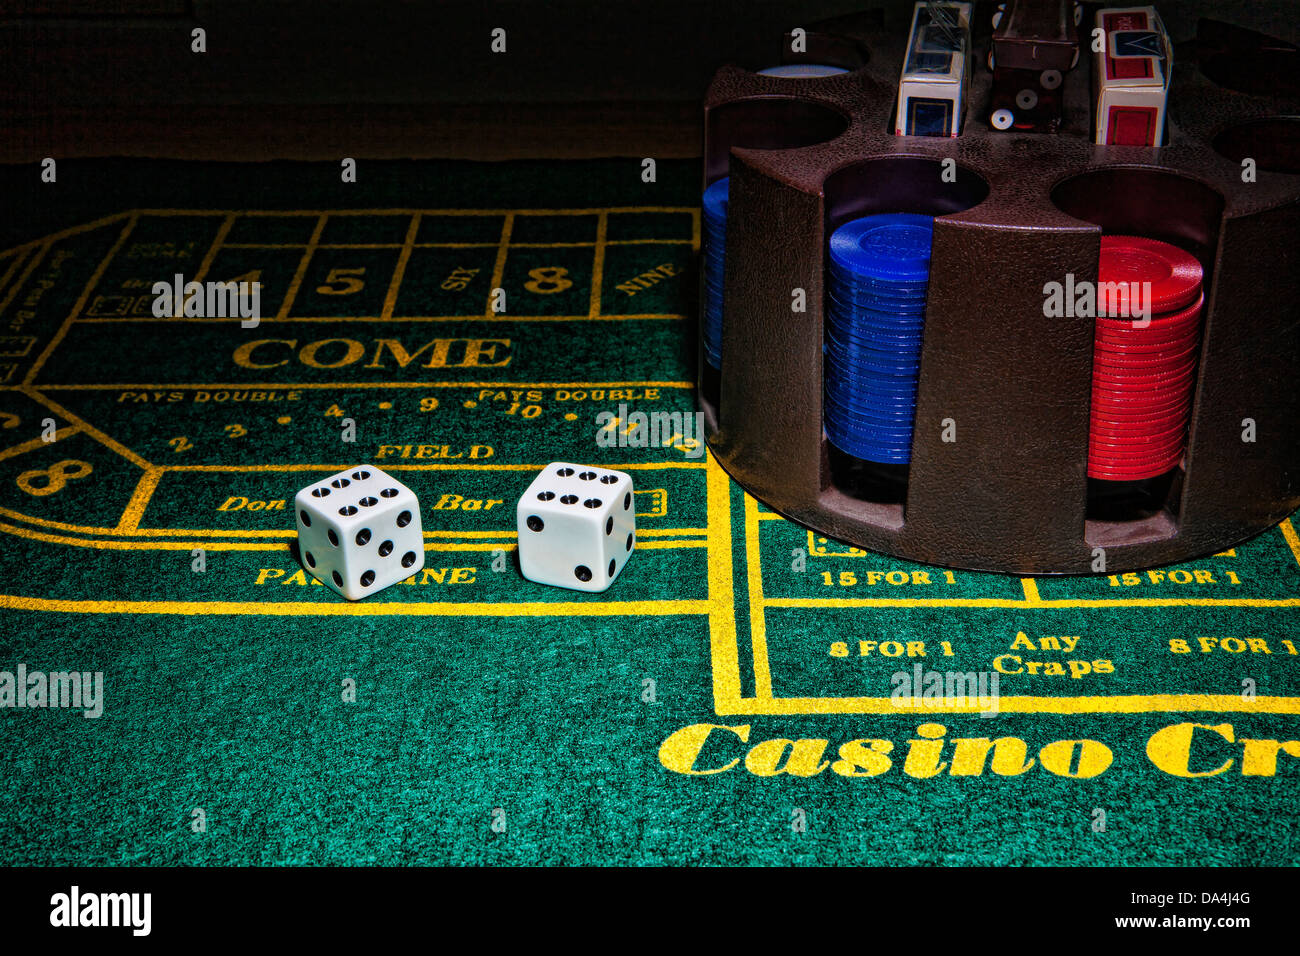 green craps table with dice and chips - Stock Image